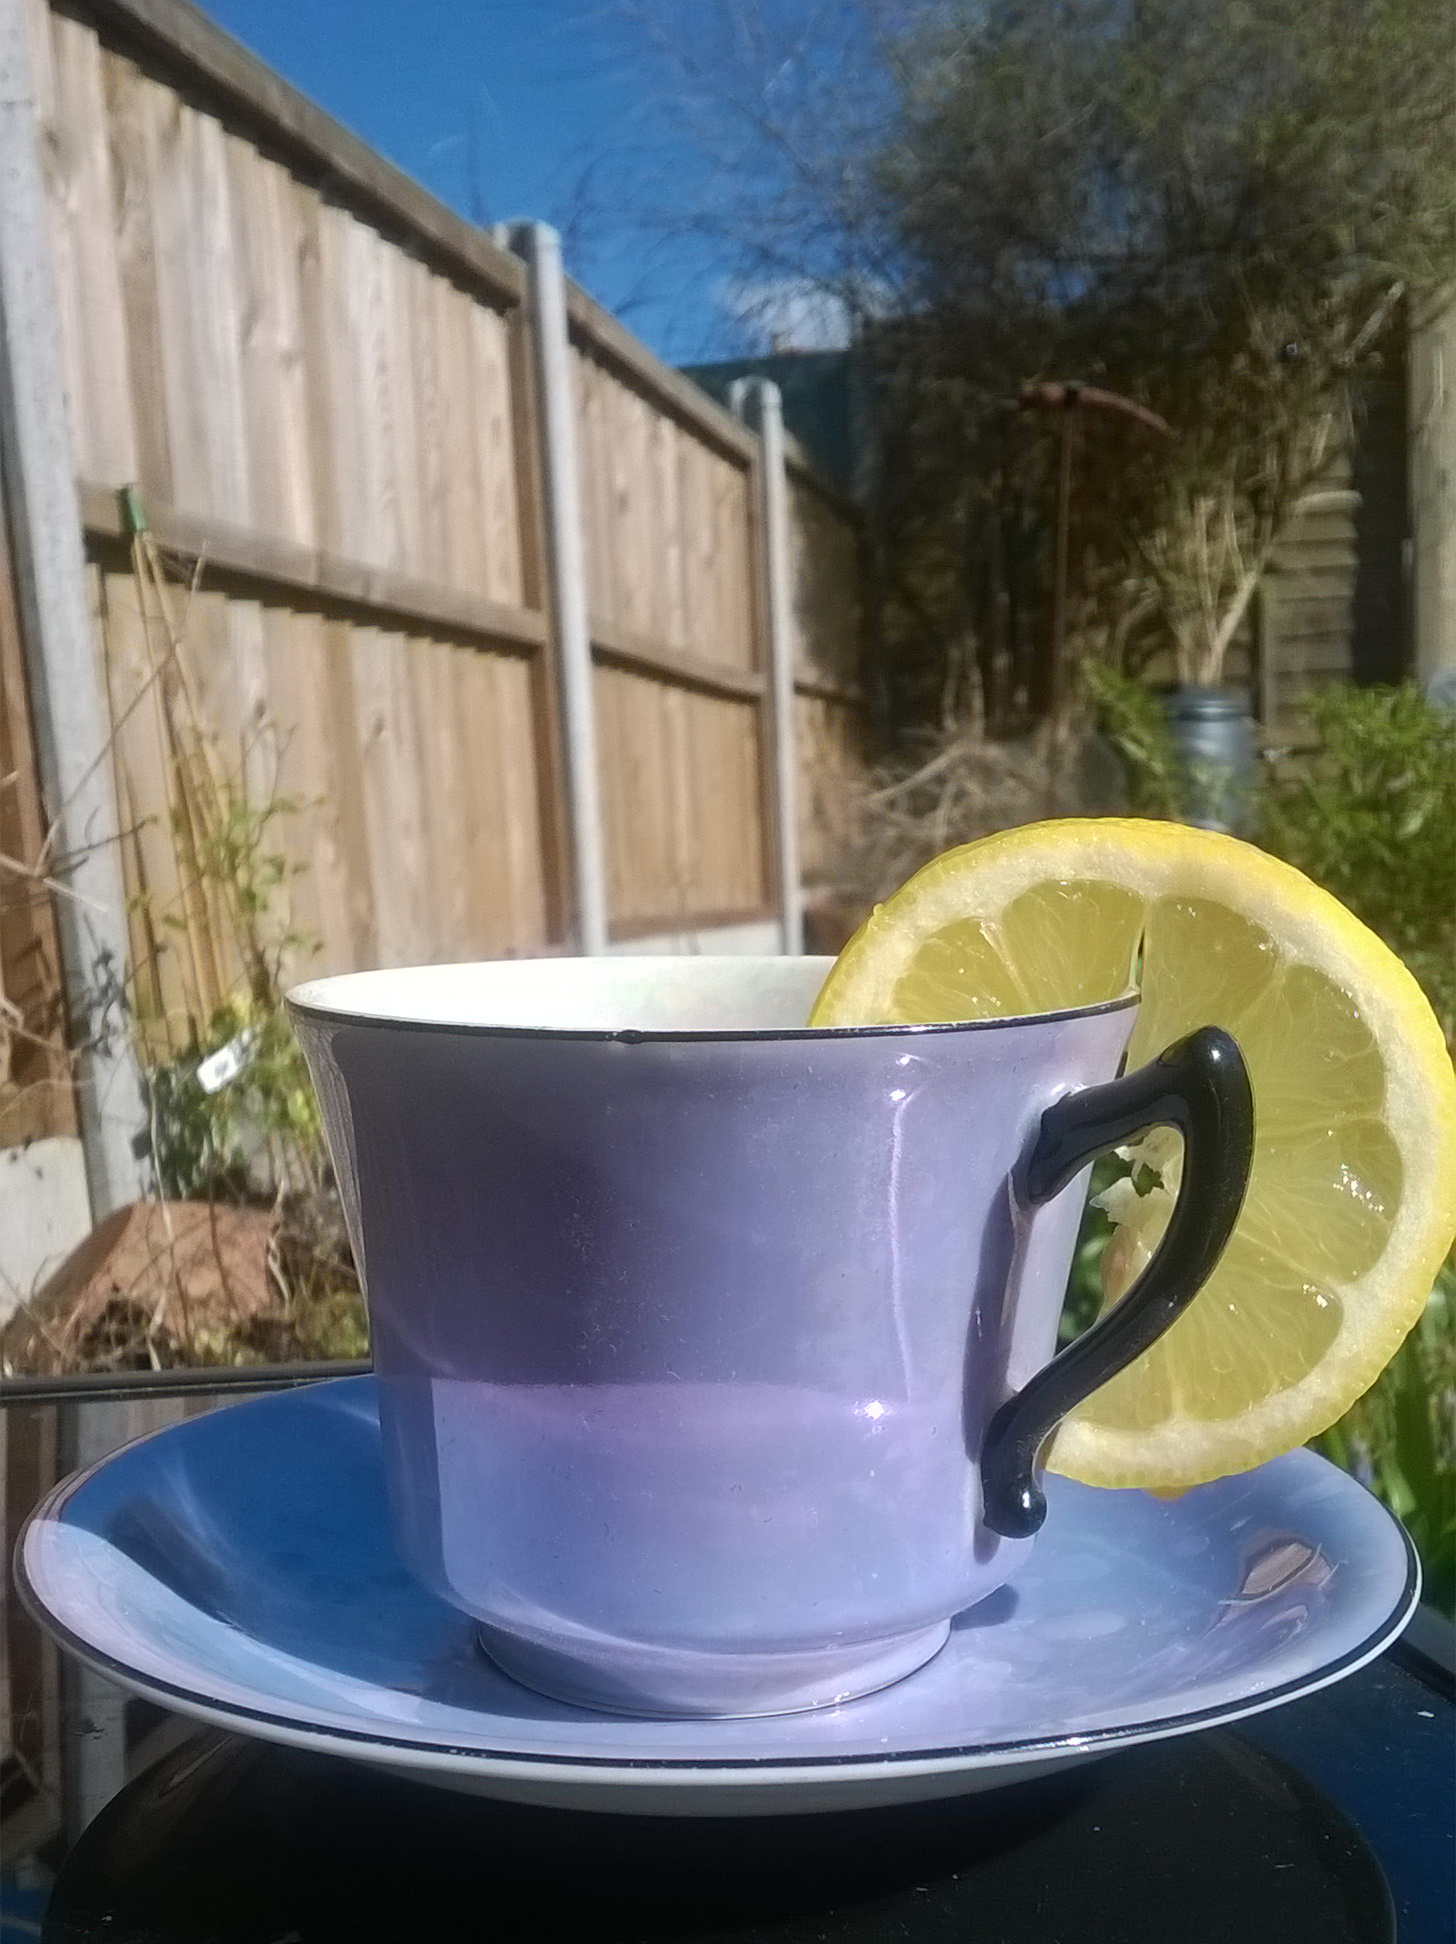 My beautiful vintage china, and hot lemon water in glorious spring sunshine, Bristol!